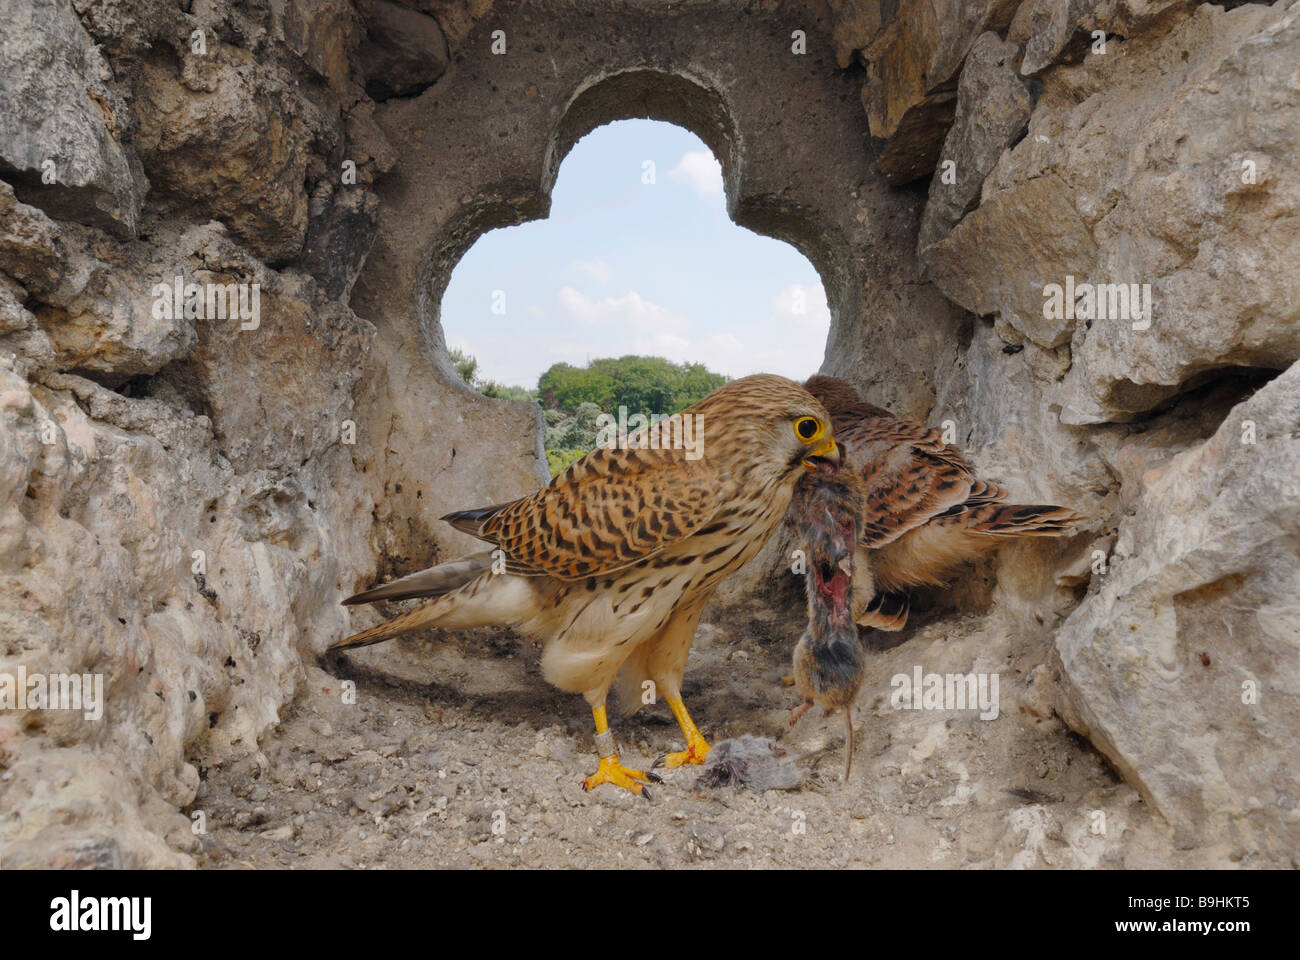 Common Kestrels (Falco tinnunculus), female with mouse in nesting cavity - Stock Image